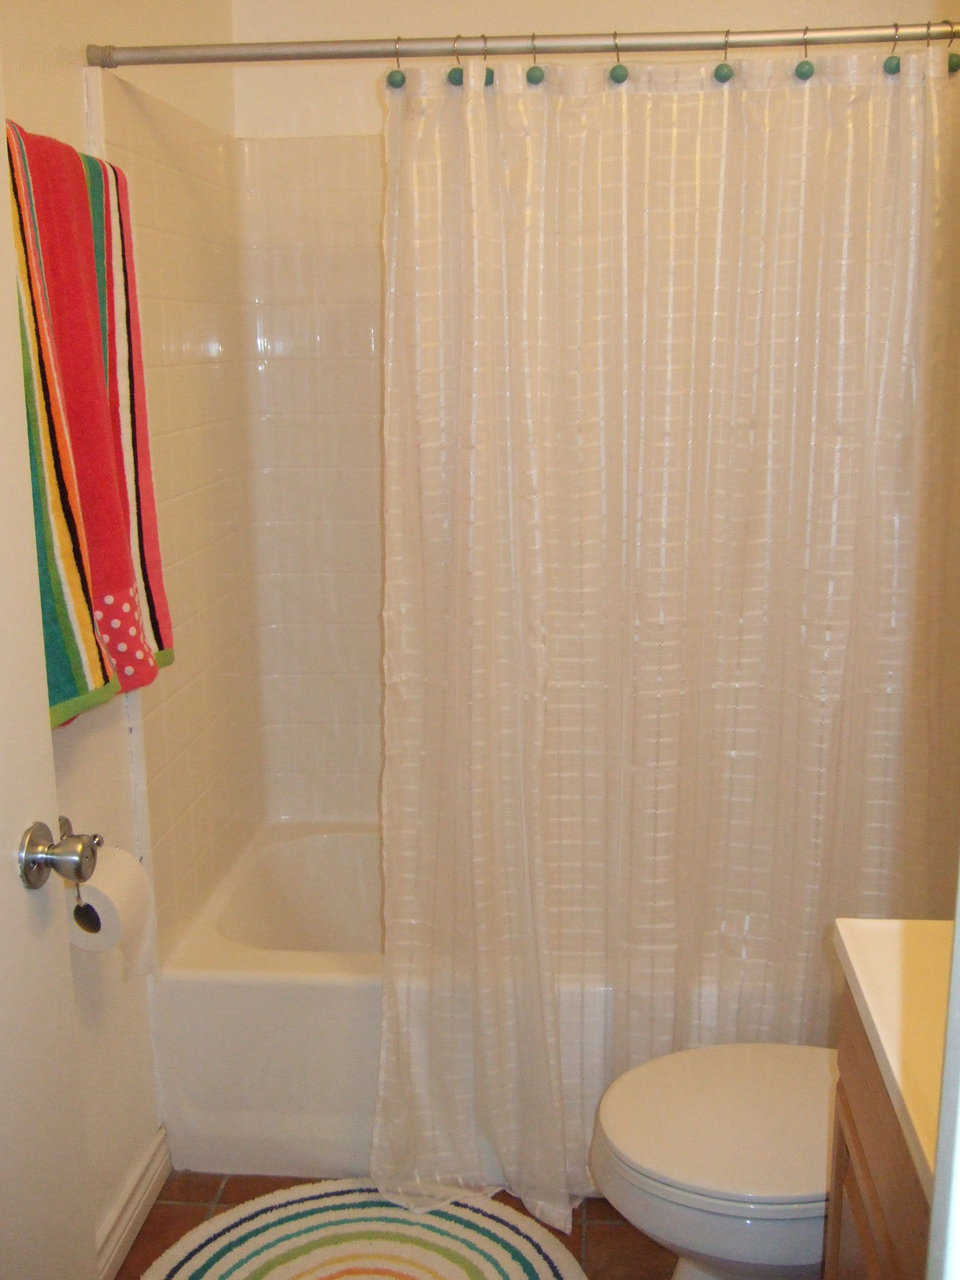 Bathroom — It has both shower and tub.